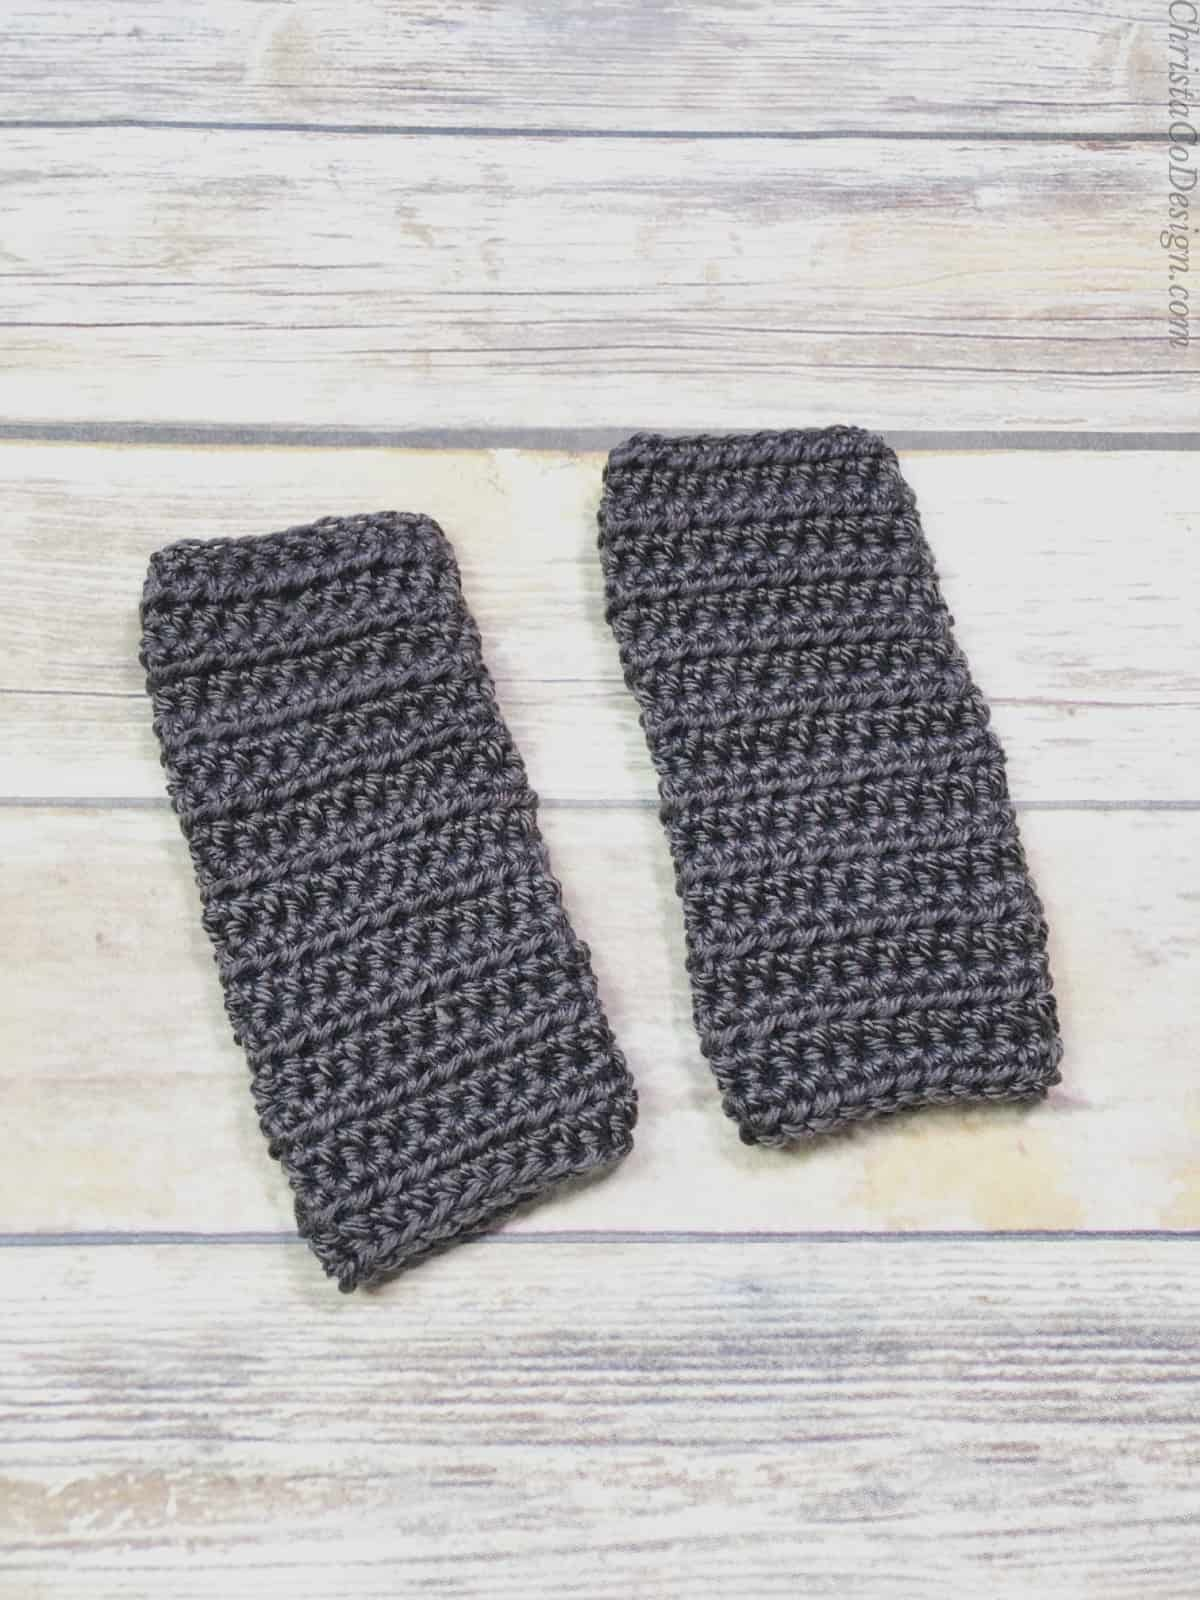 picture of women's fingerless gloves crochet pattern flat